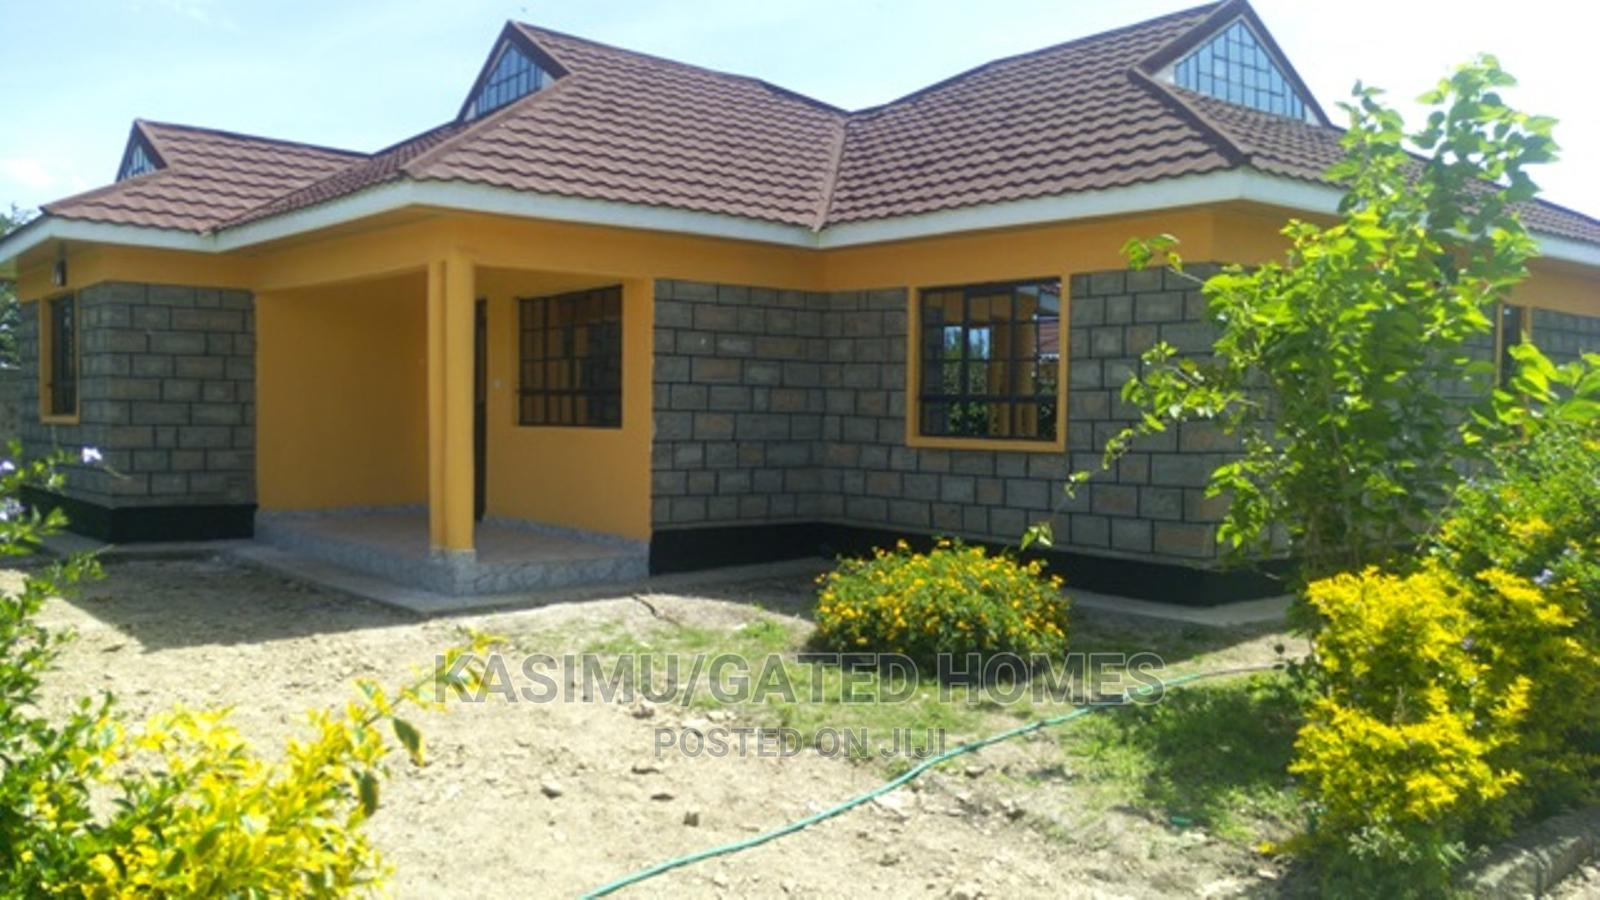 Kitengela 3 Bedroom House for Rent in a Gated Community